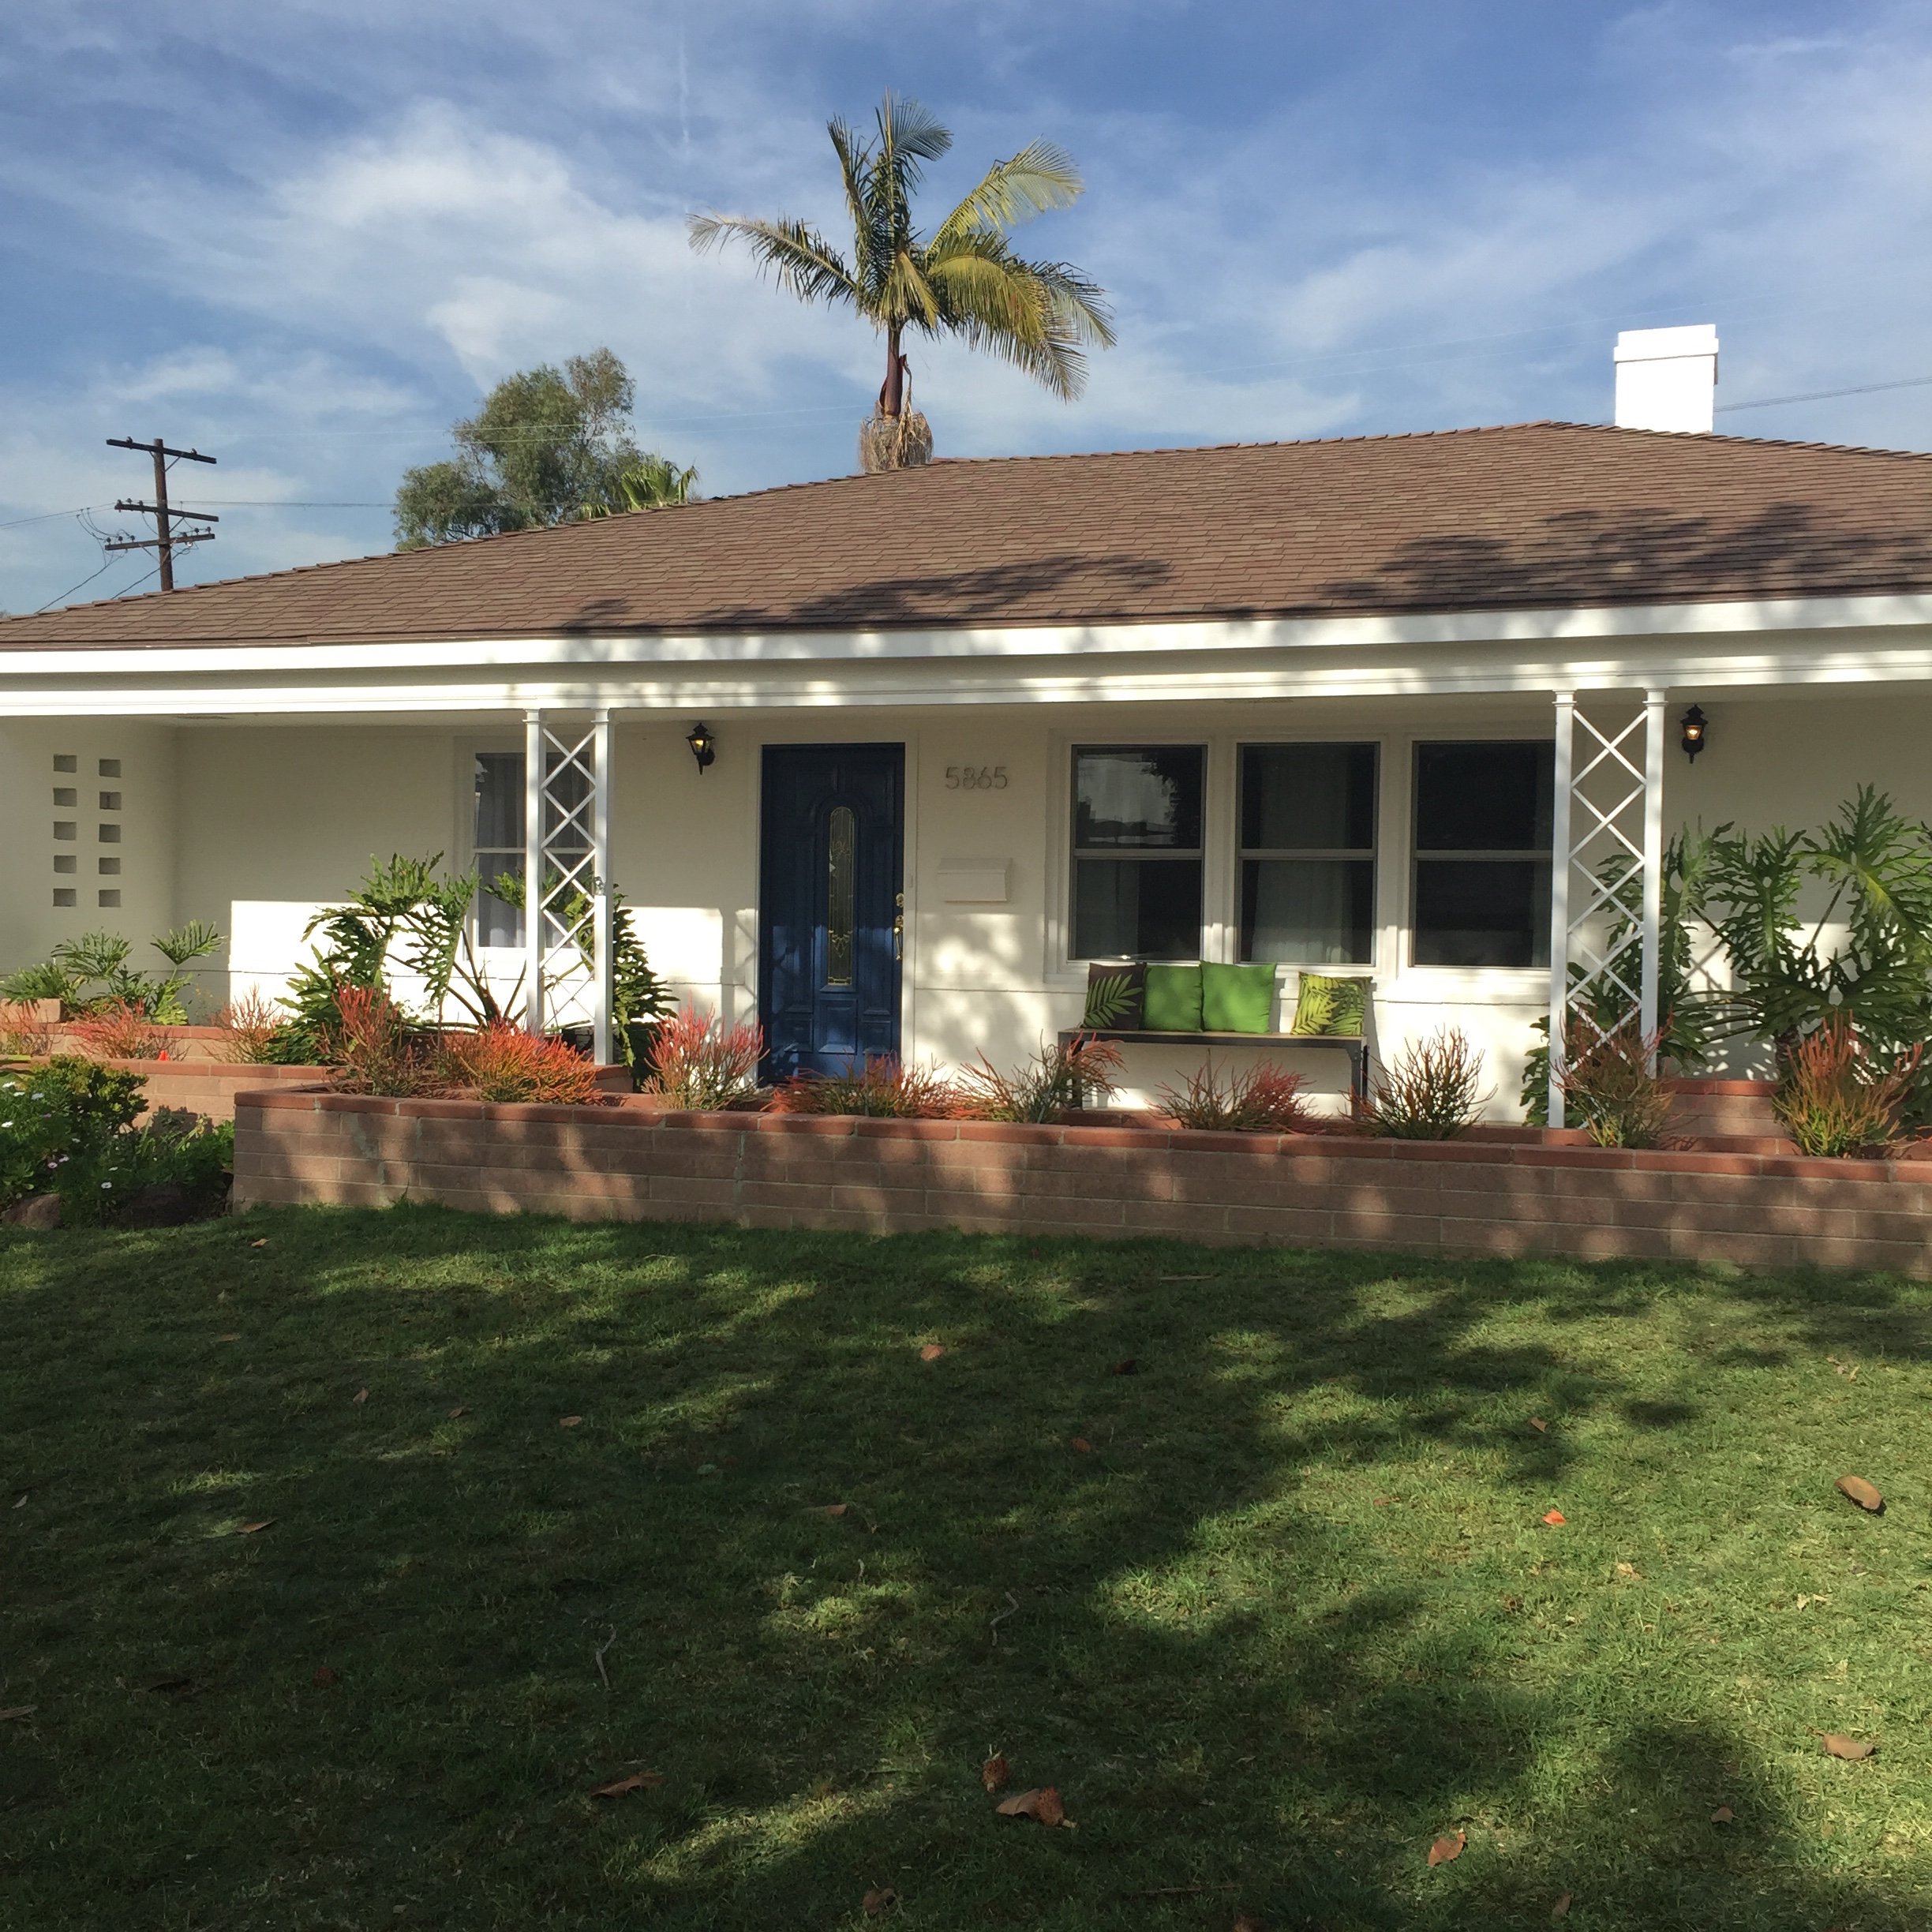 Amazing Mid Century Modern in Westport Heights. 3bed 2 bath with sun room.     Claire Lissone   tel: 310.689.9689   email:  claire@realestate-collective.com   calBRE#01426130